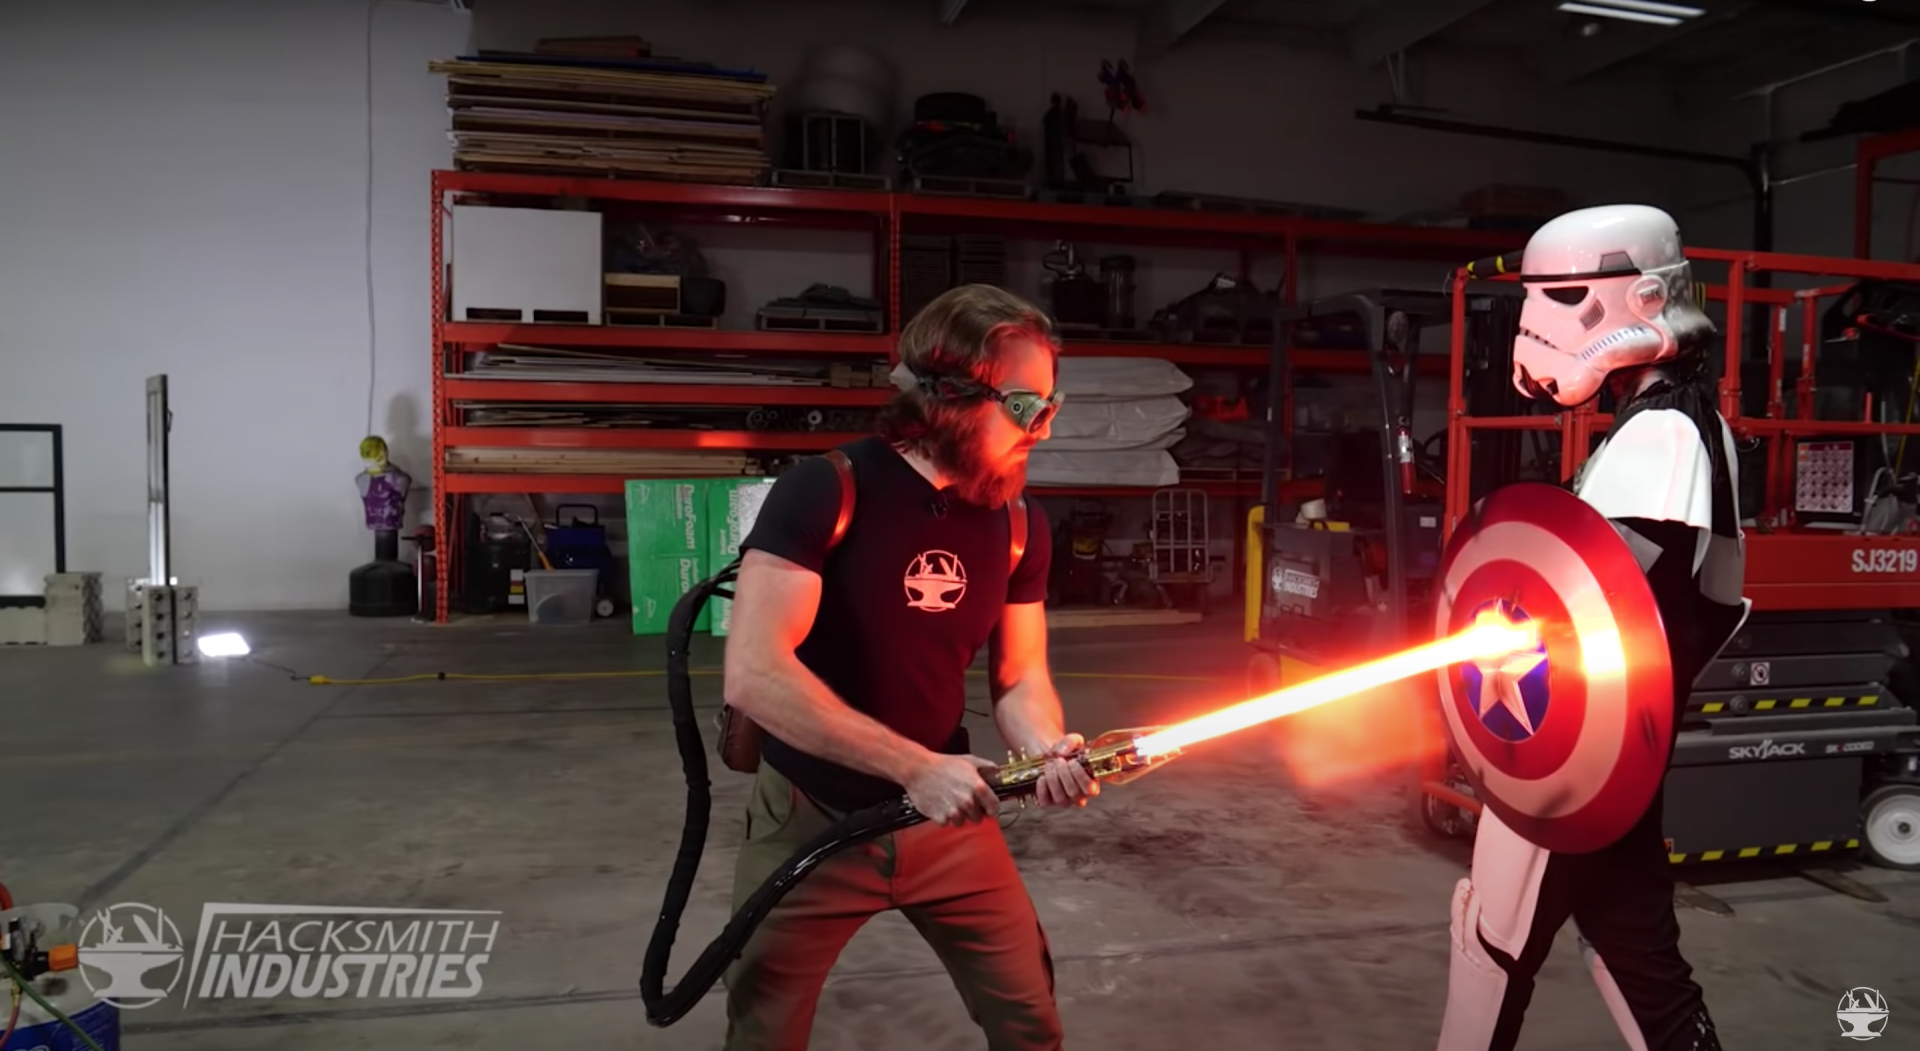 This IRL plasma protosaber can cut through quarter-inch-thick steel plates.